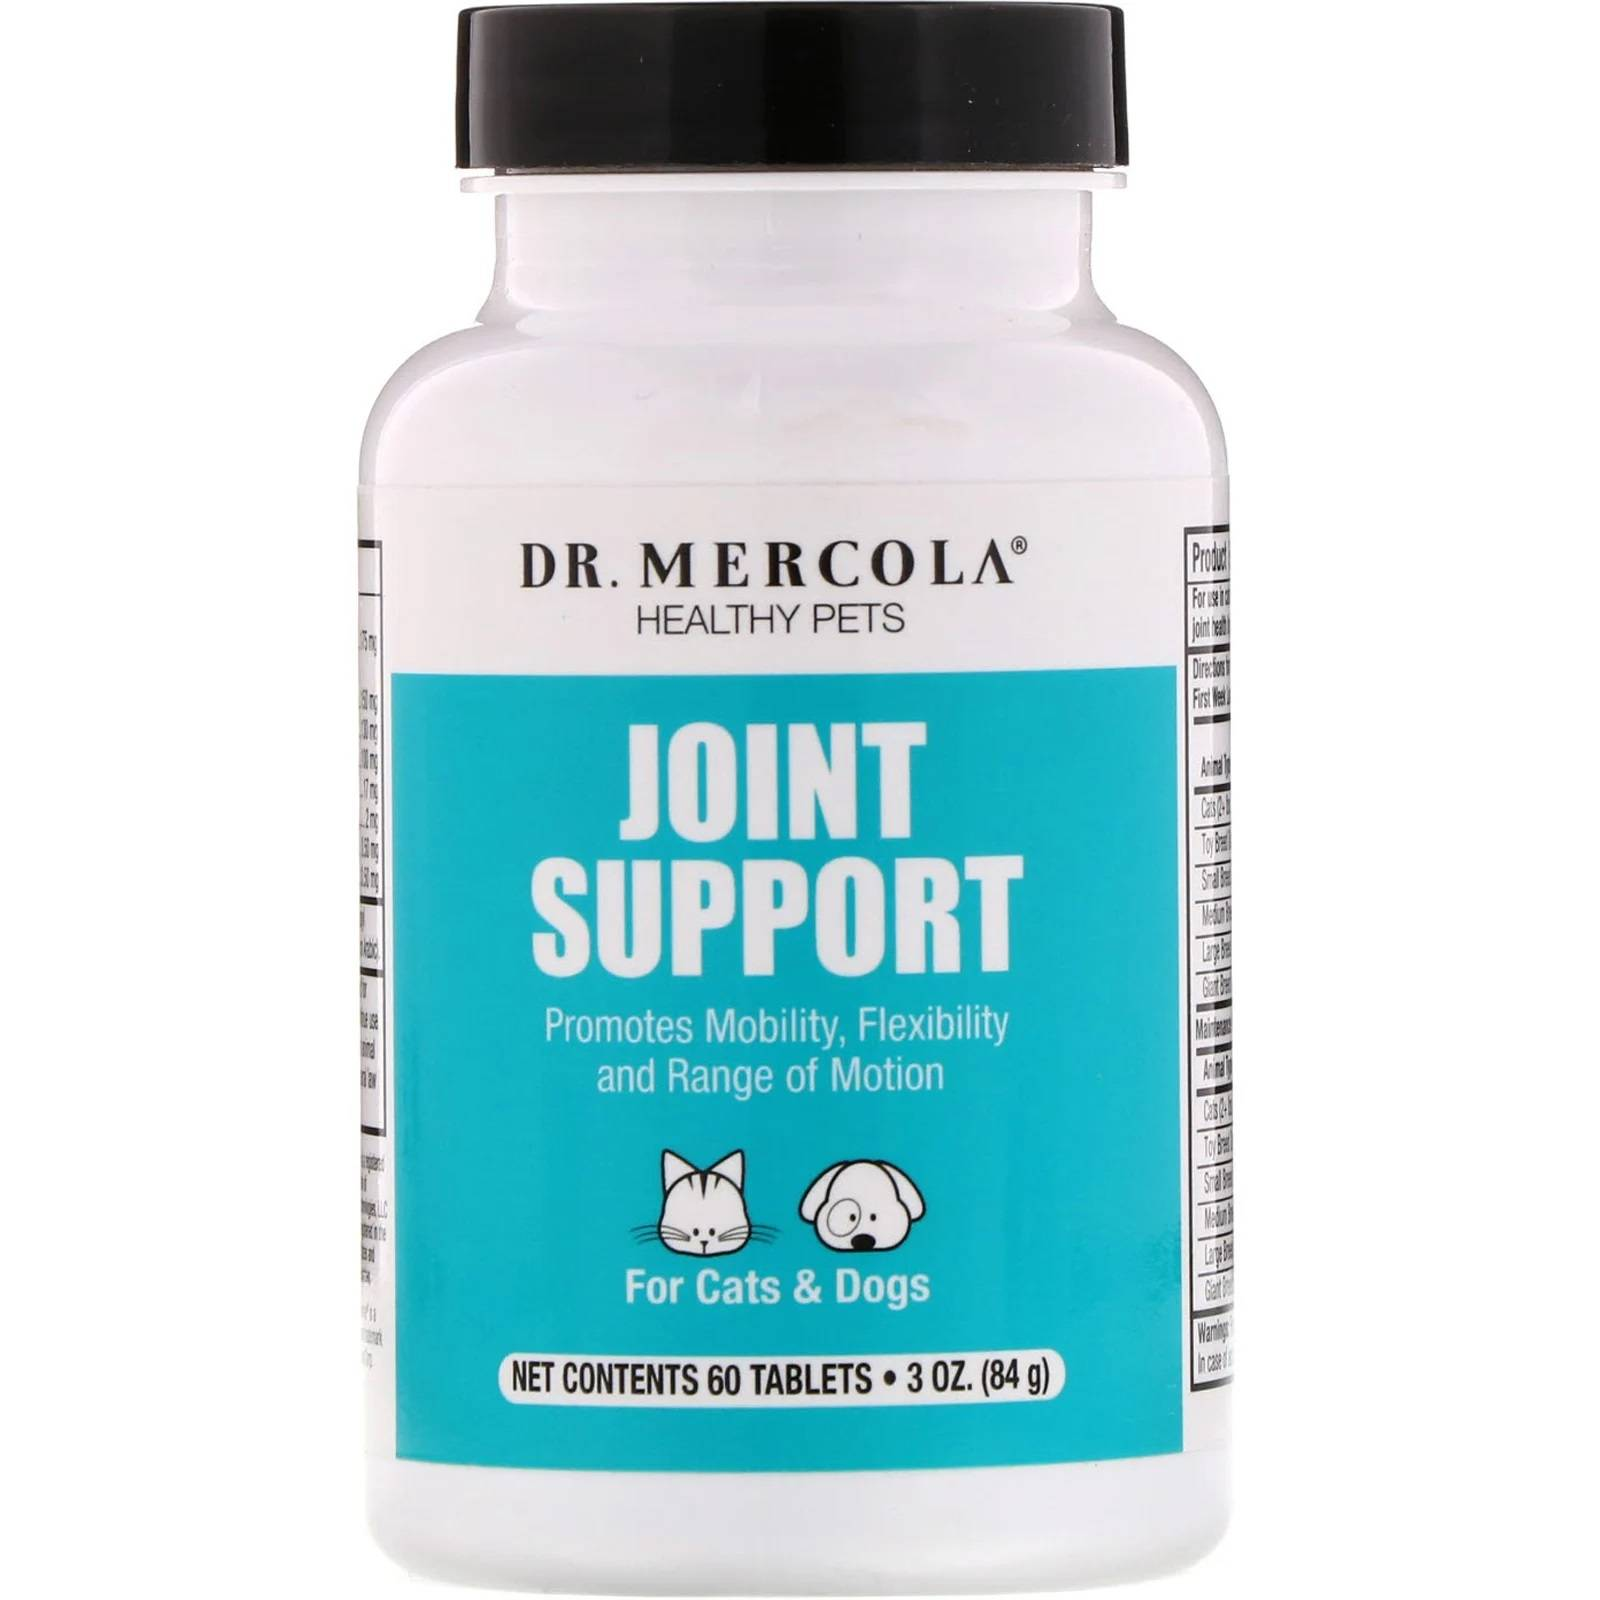 Dr. Mercola Healthy Pets Joint Support, with BiovaPlex for Pets (60 Tablets) - Dr. Mercola